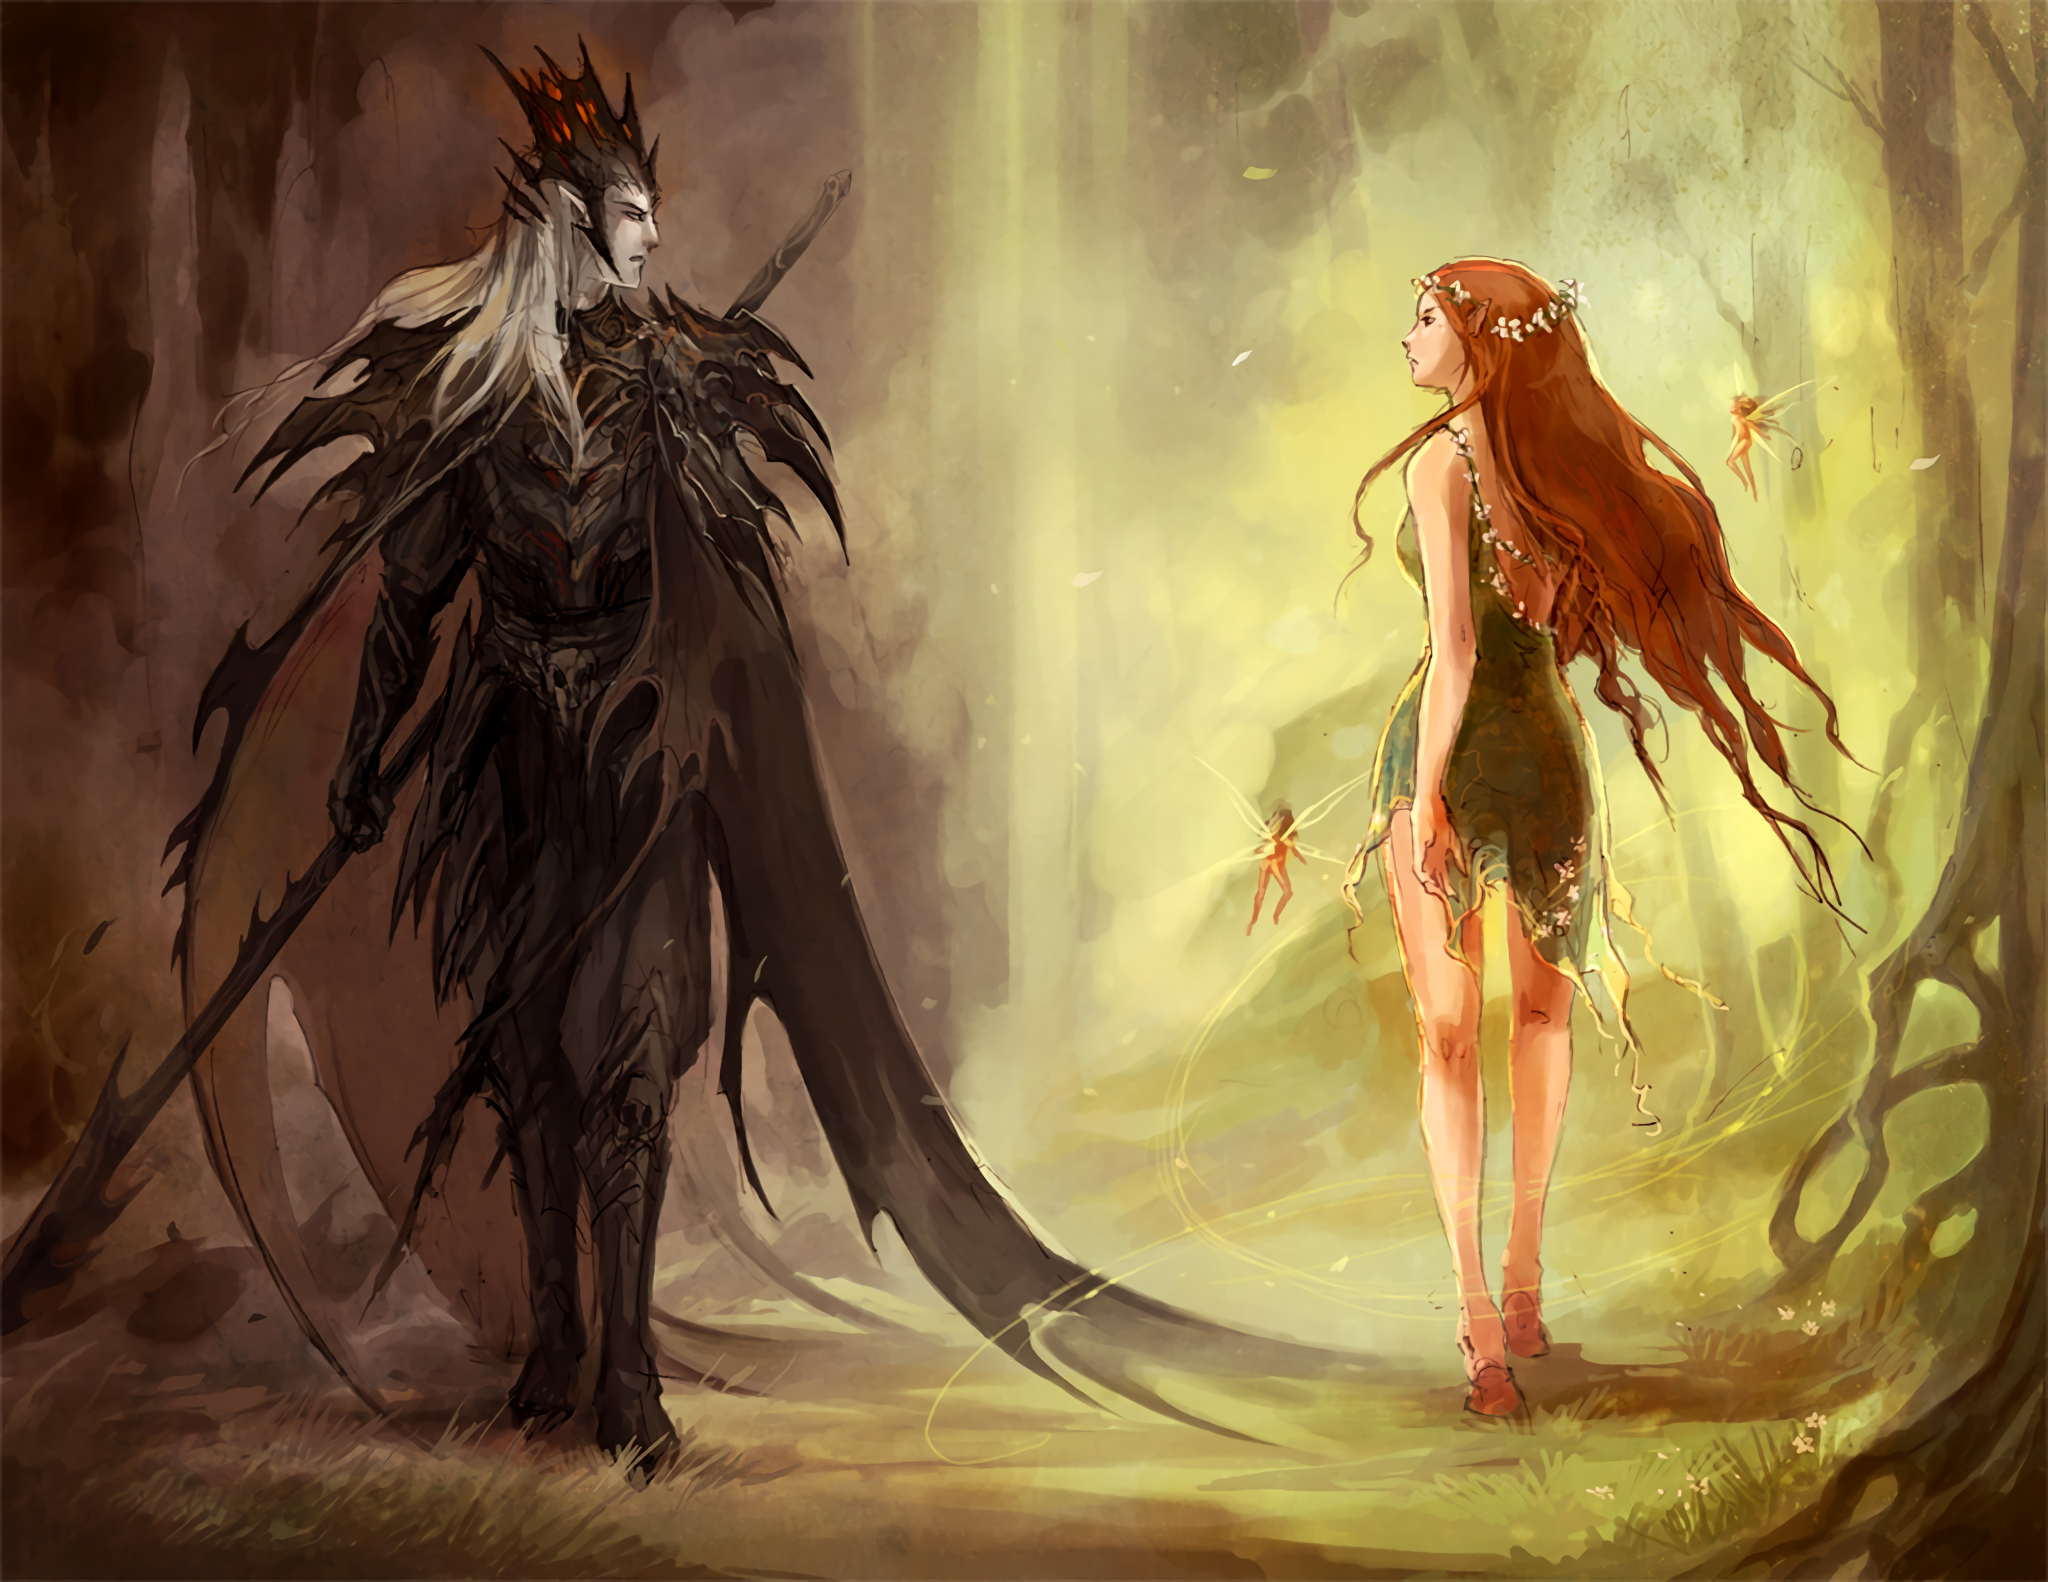 Hades and Persephone HD Wallpaper Background Image 2048x1582 2048x1582